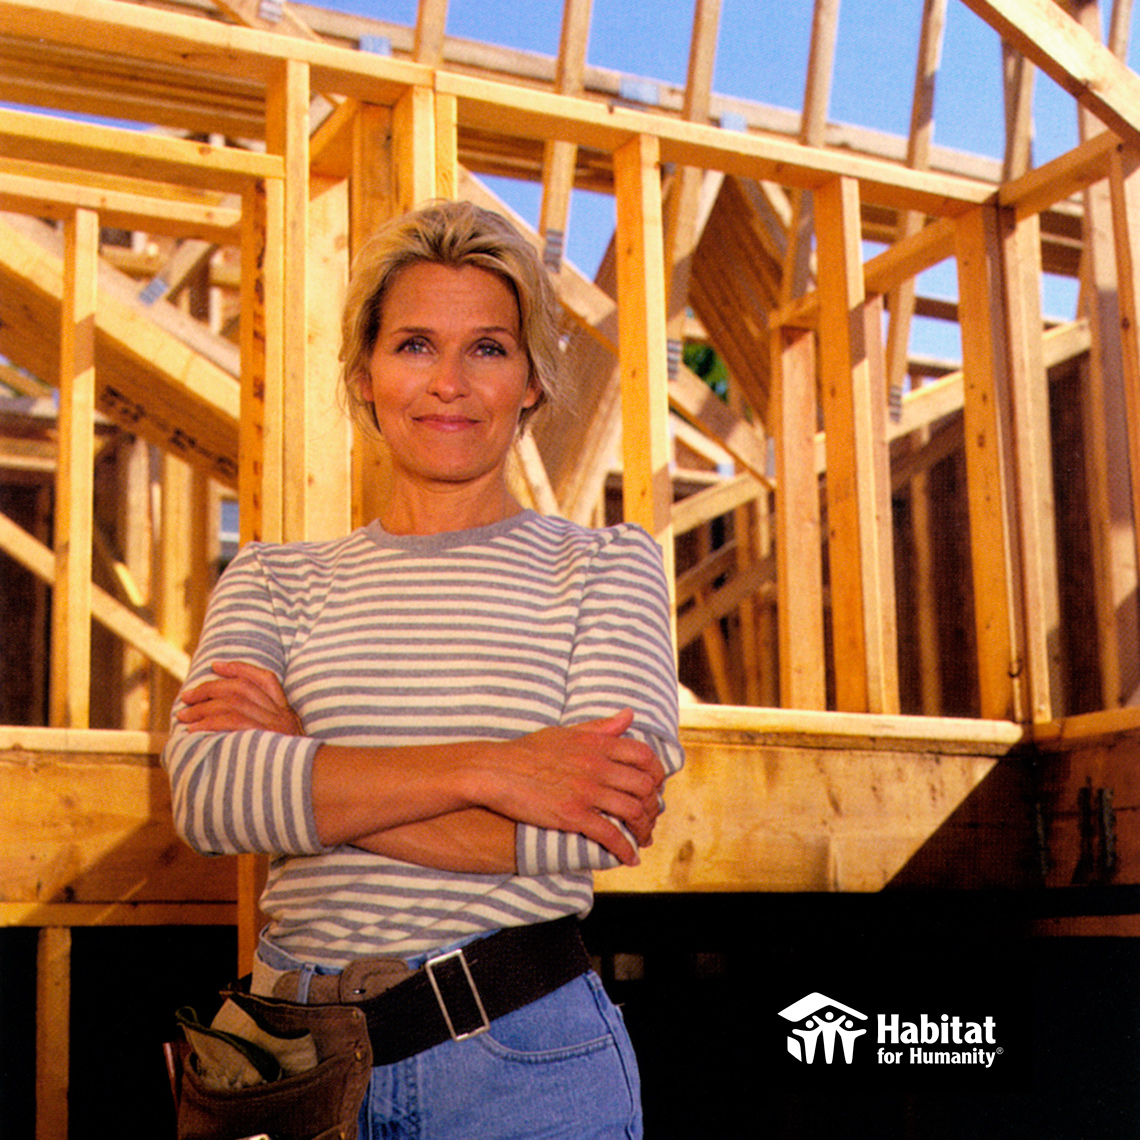 Habitat for Humanity Woman striped shirt arms crossed